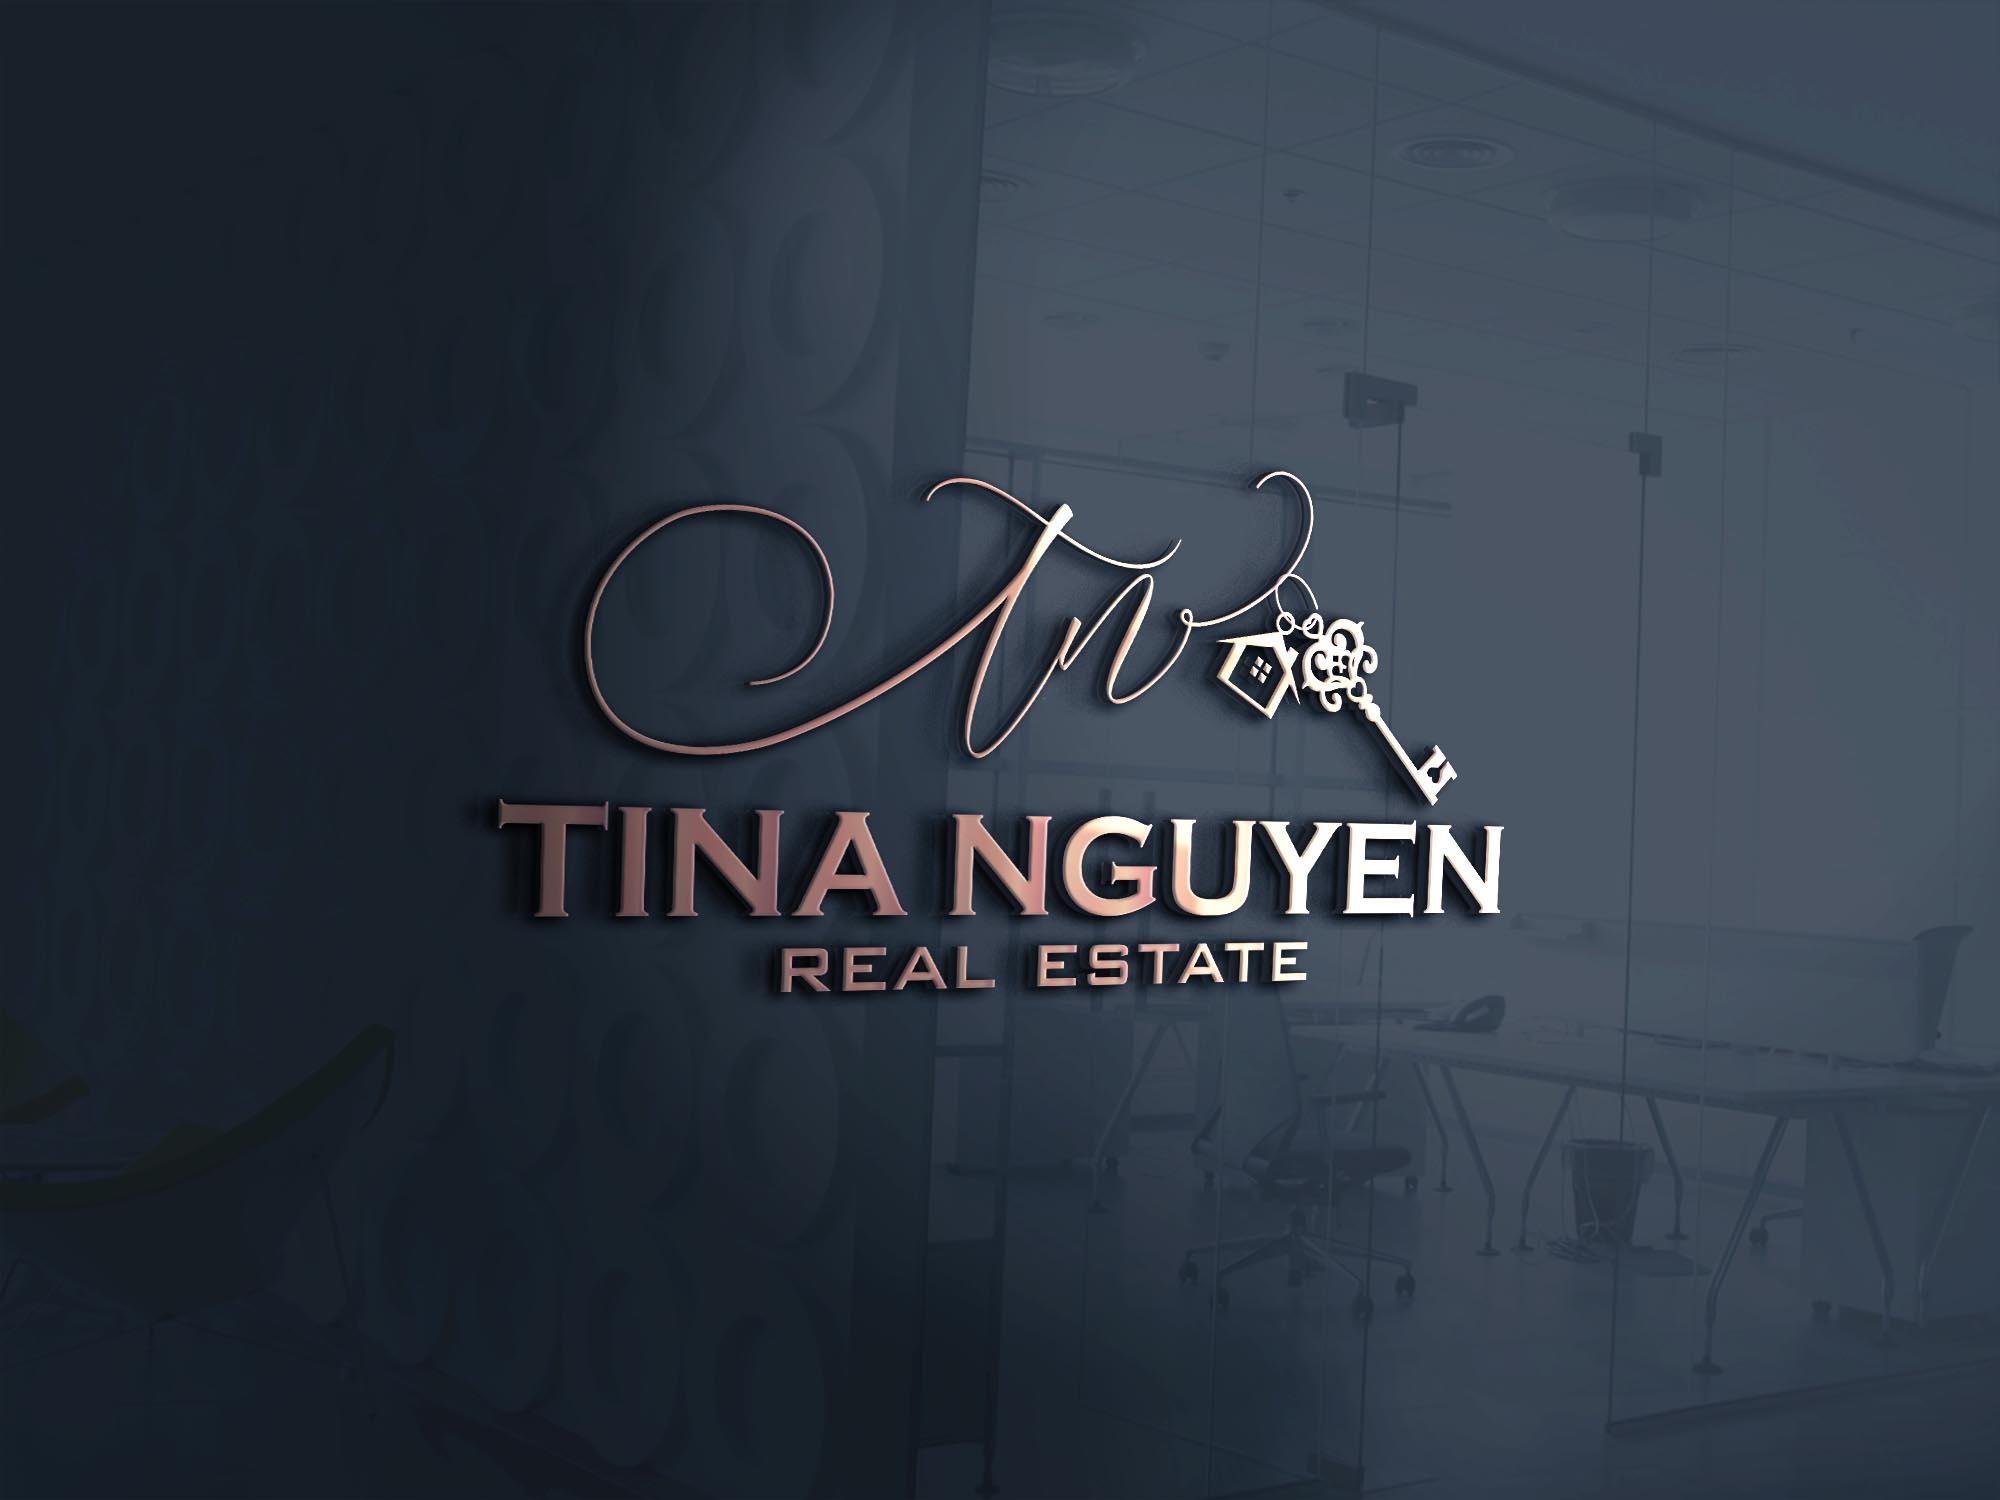 Tina Nguyen Real Estate